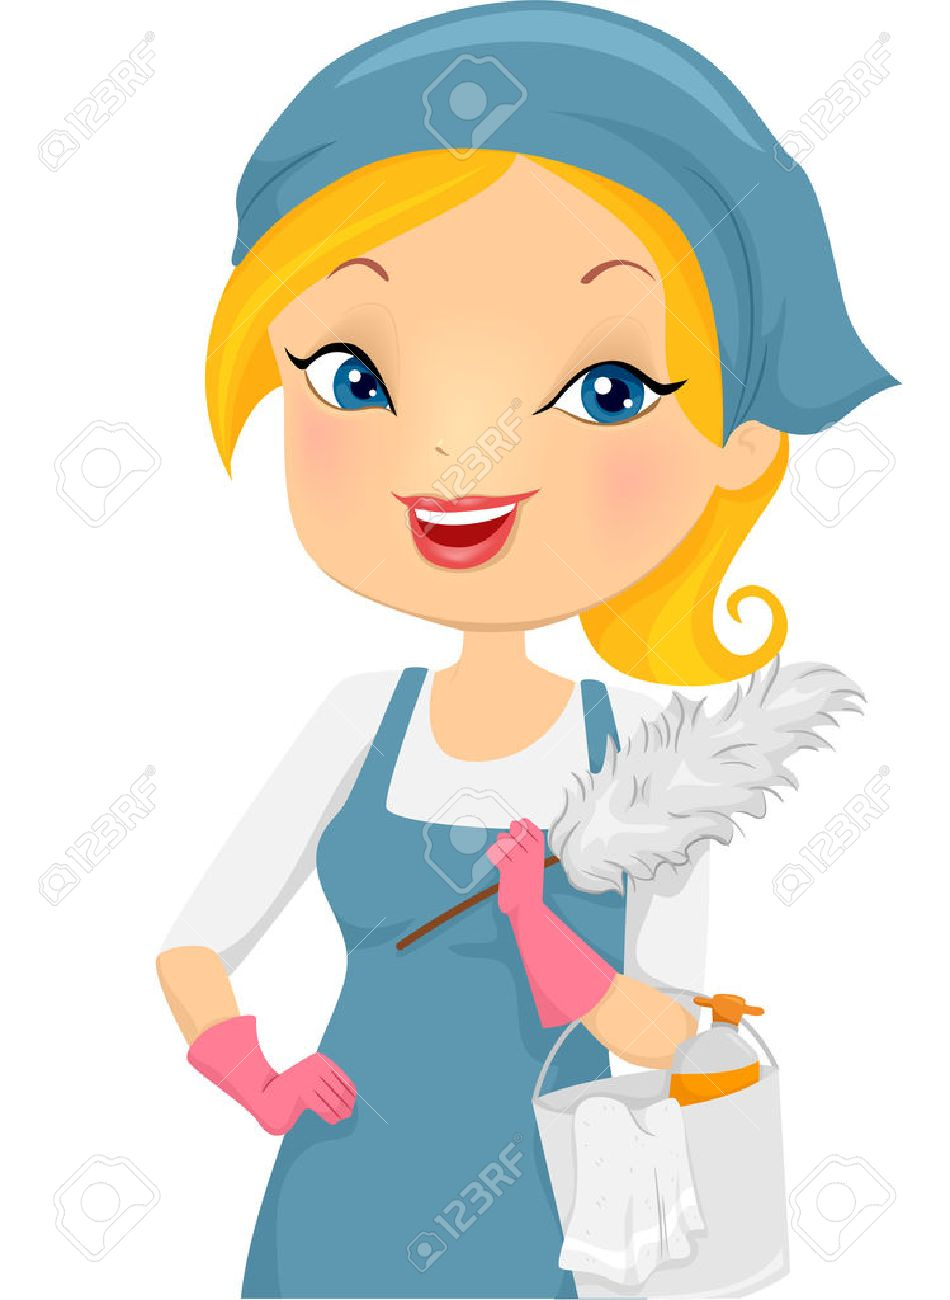 826 Housekeeper Cleaning Stock Vector Illustration And Royalty ...